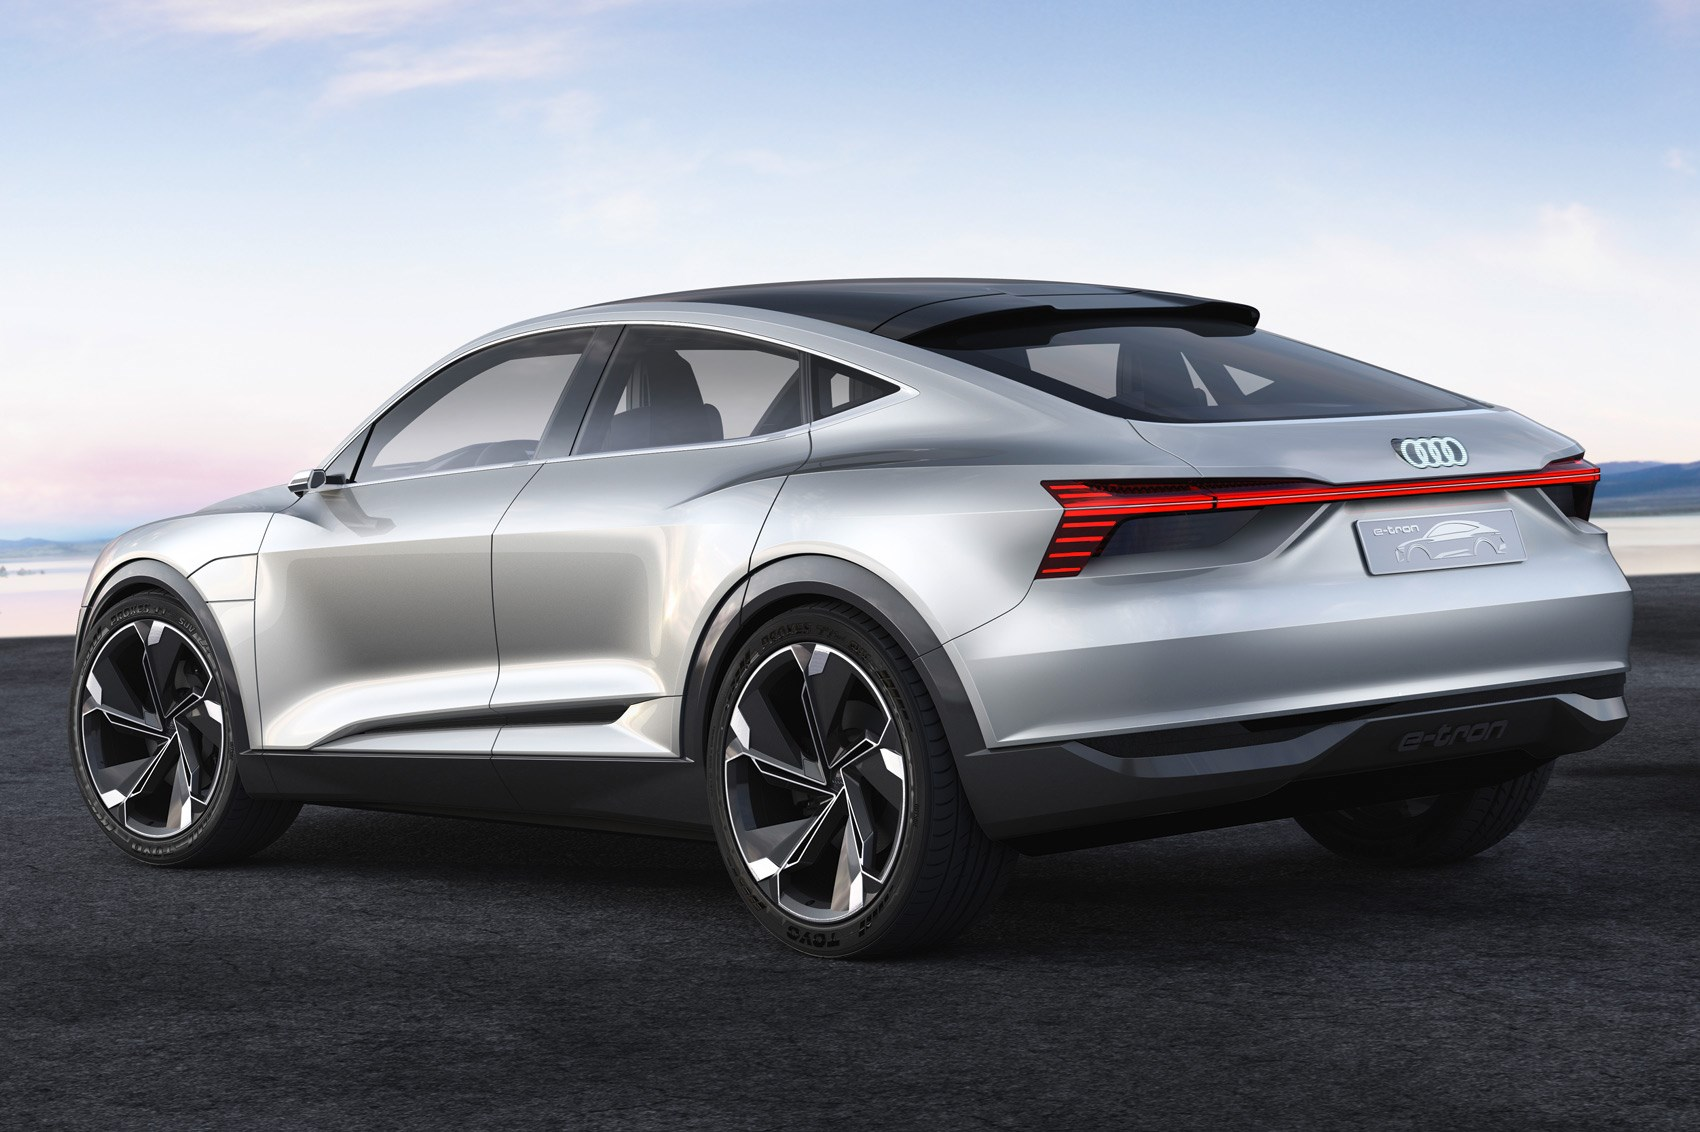 New Audi E Tron Concept At Shanghai 2017 Pictures And Details on rover coupe